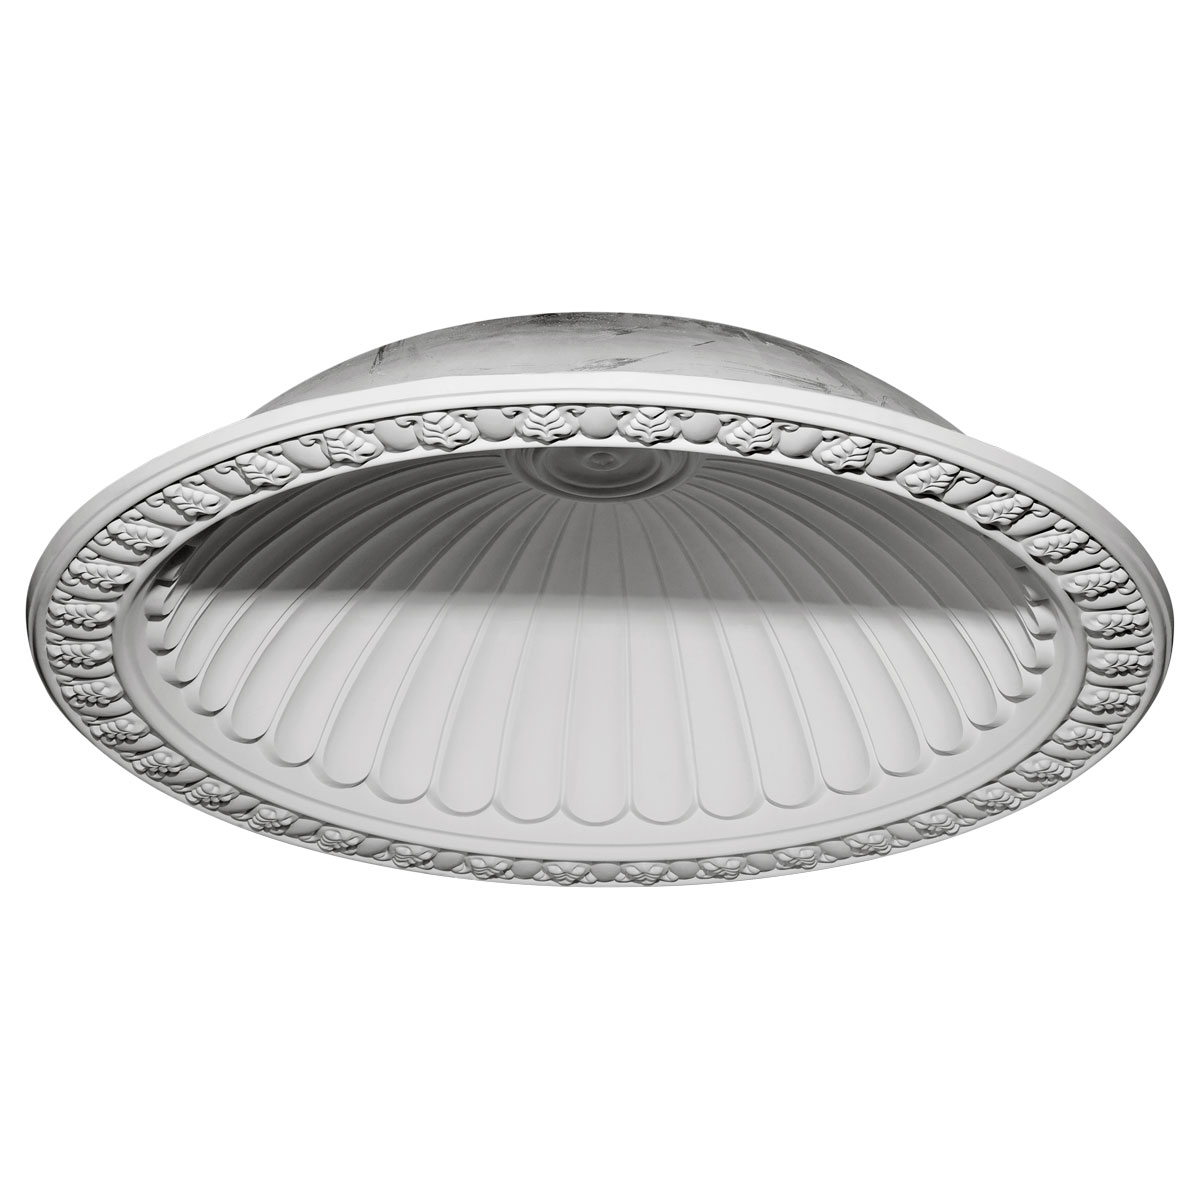 """DOME60CL 60-3/4""""OD x 50-1/8""""ID x 12-5/8""""D Claremont Recessed Mount Ceiling Dome (53""""Diameter x 14""""D Rough Opening)"""